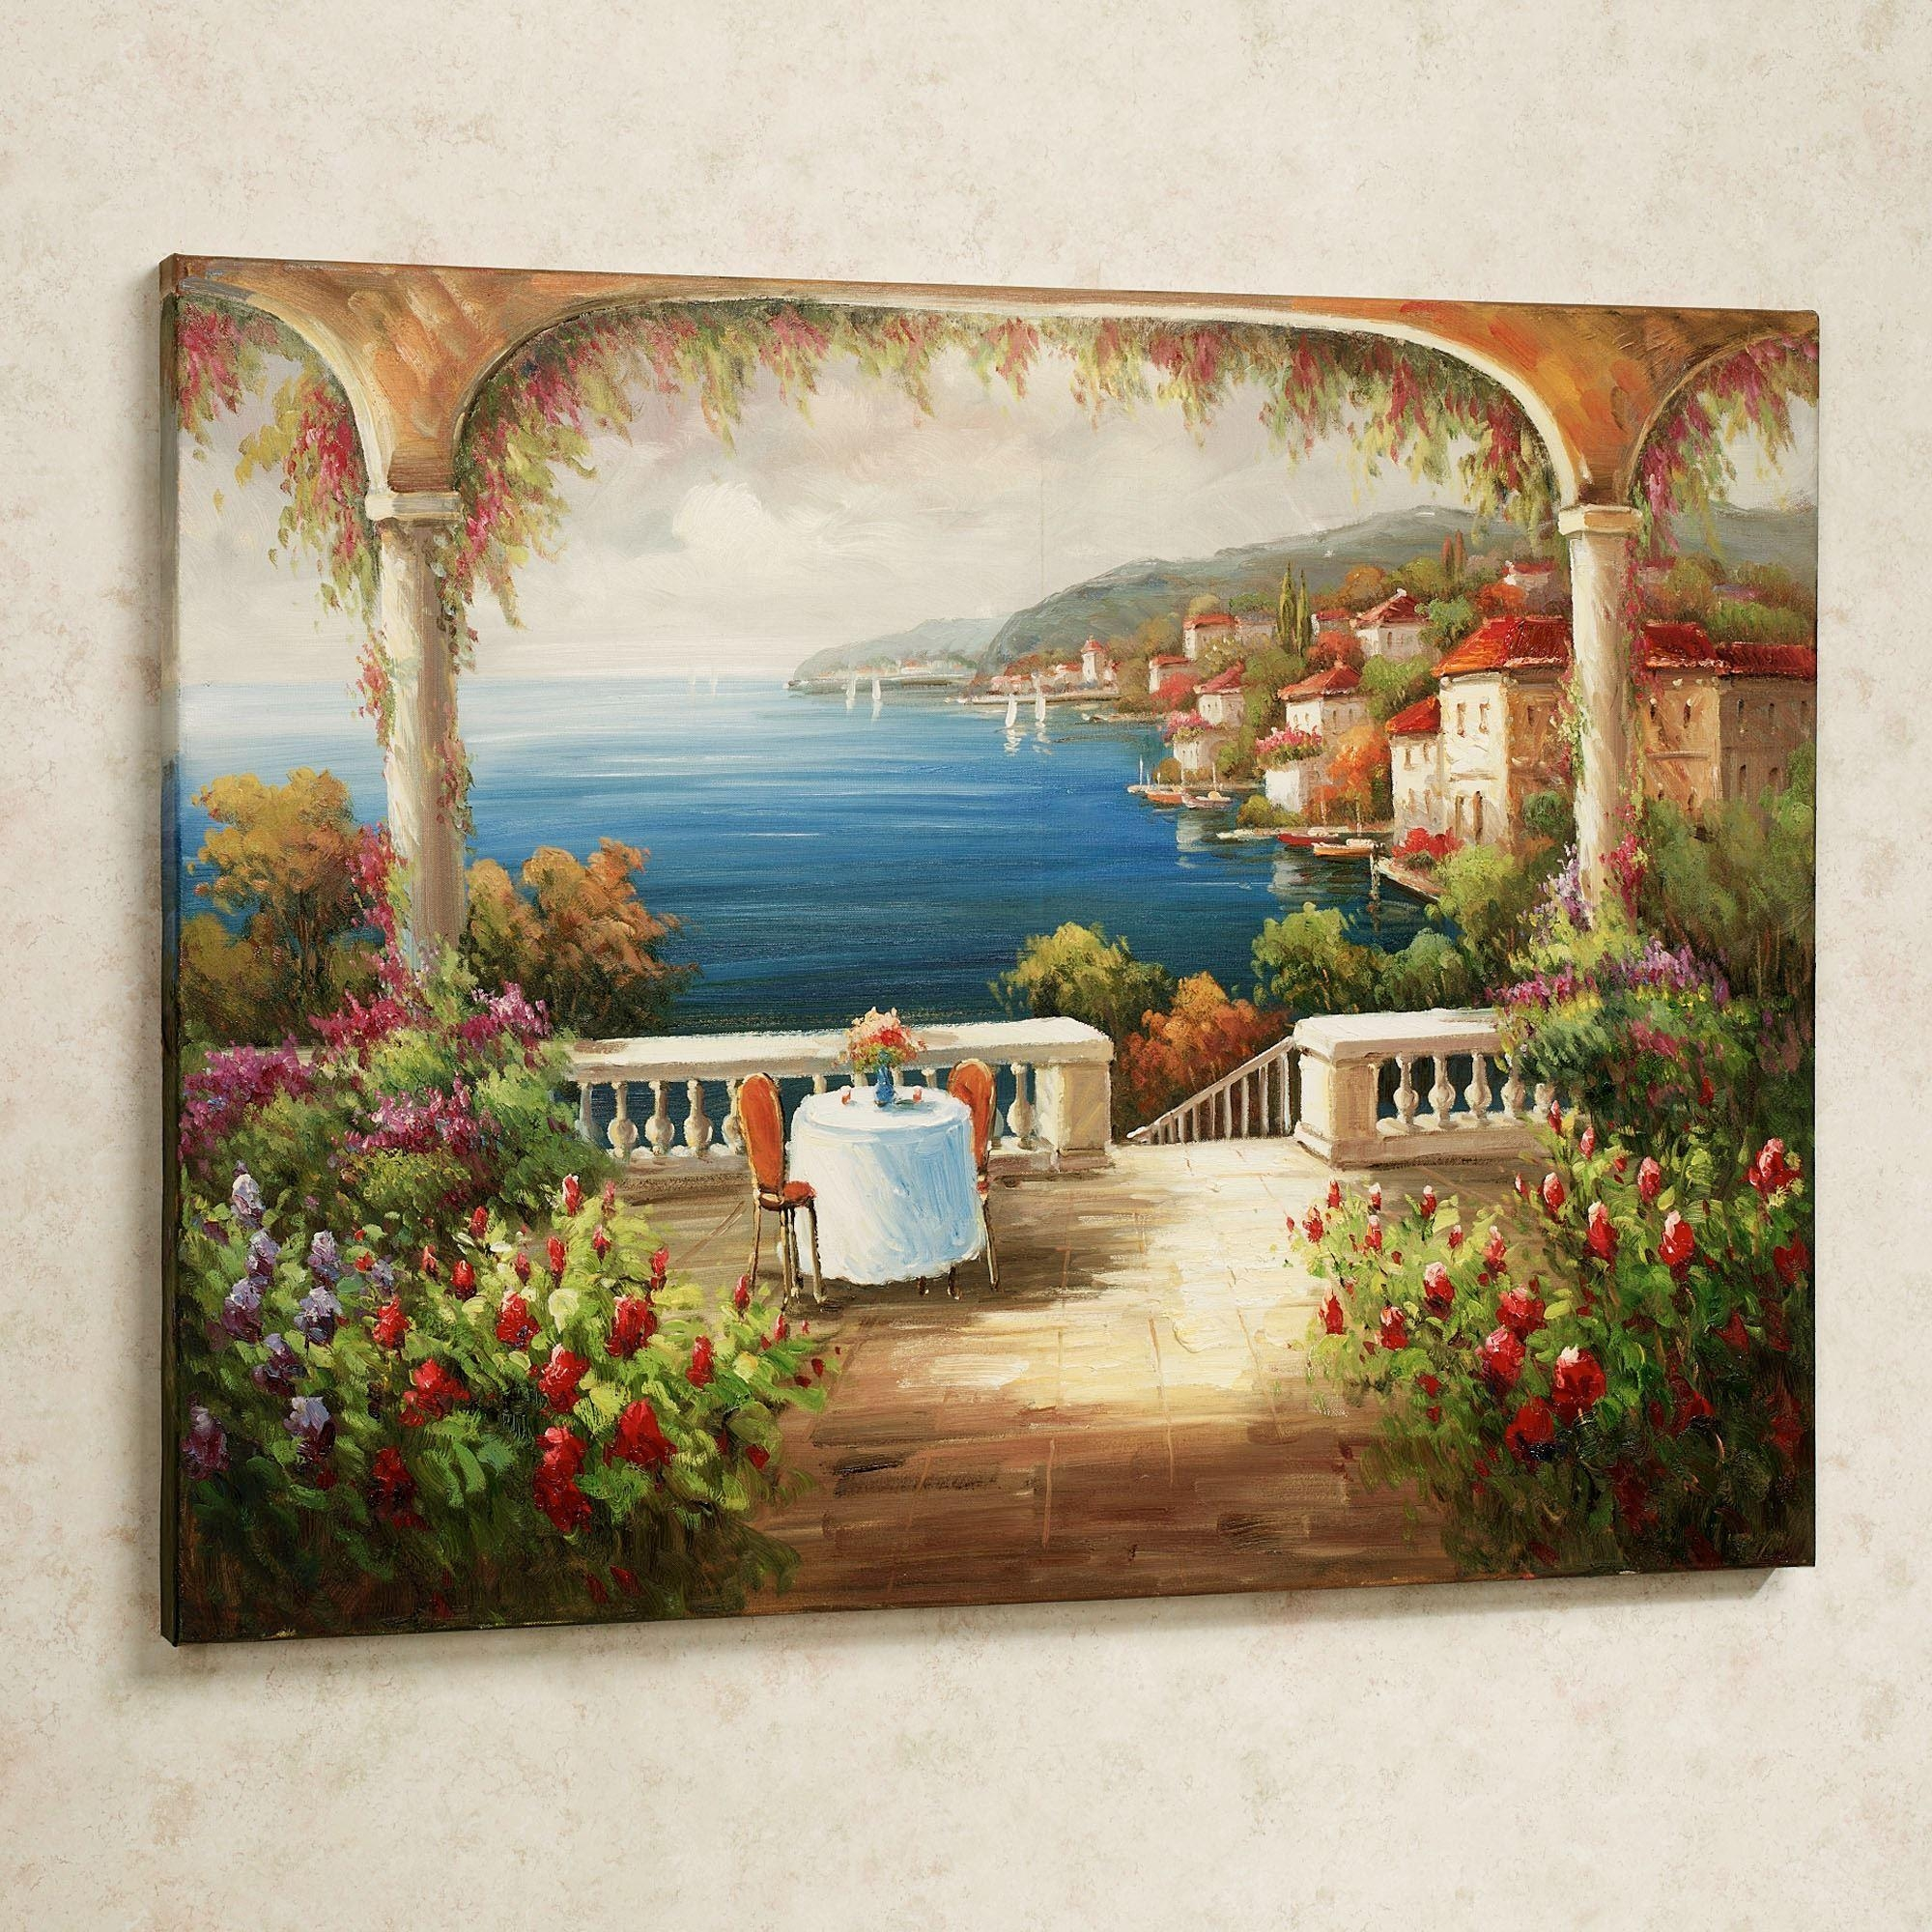 Kitchen : Cheap Artwork Bedroom Artwork Dining Room Wall Art With Regard To Cheap Italian Wall Art (View 3 of 20)